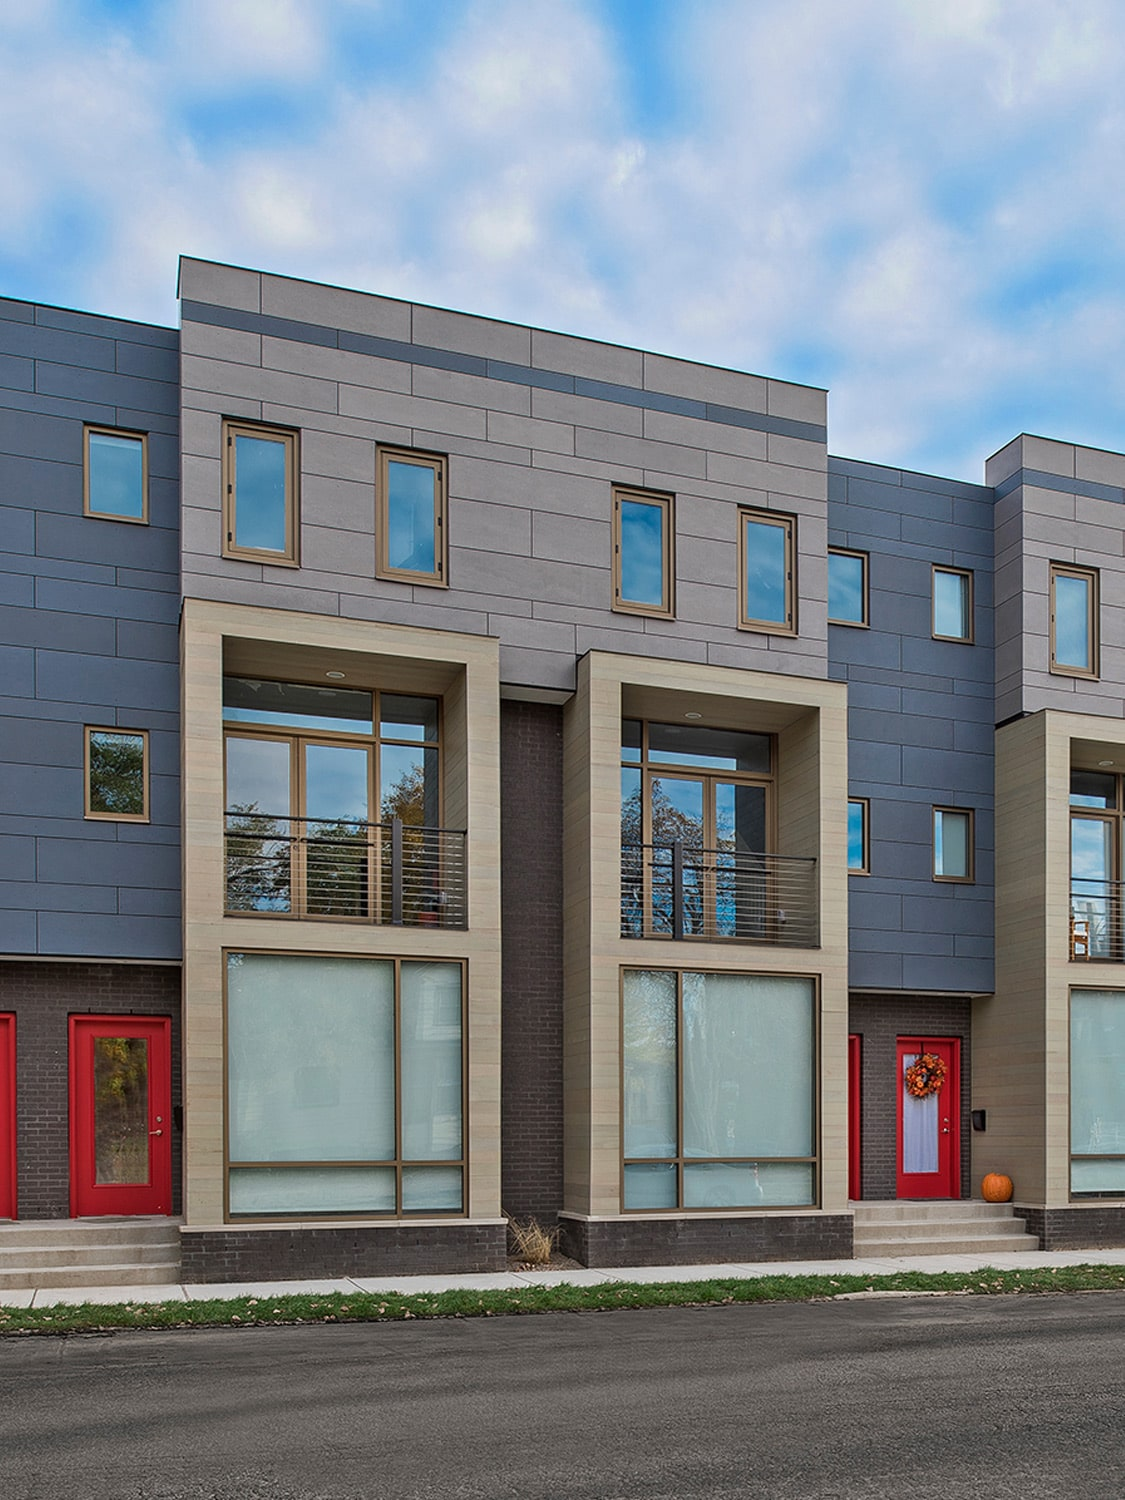 The Coe is the first project of the $30 million Strategic Neighborhood Fund, a collaborative partnership between Invest Detroit, the Detroit Development Fund and Opportunity Resource Fund. It's a 12-unit development in the West Village neighborhood of Detroit.